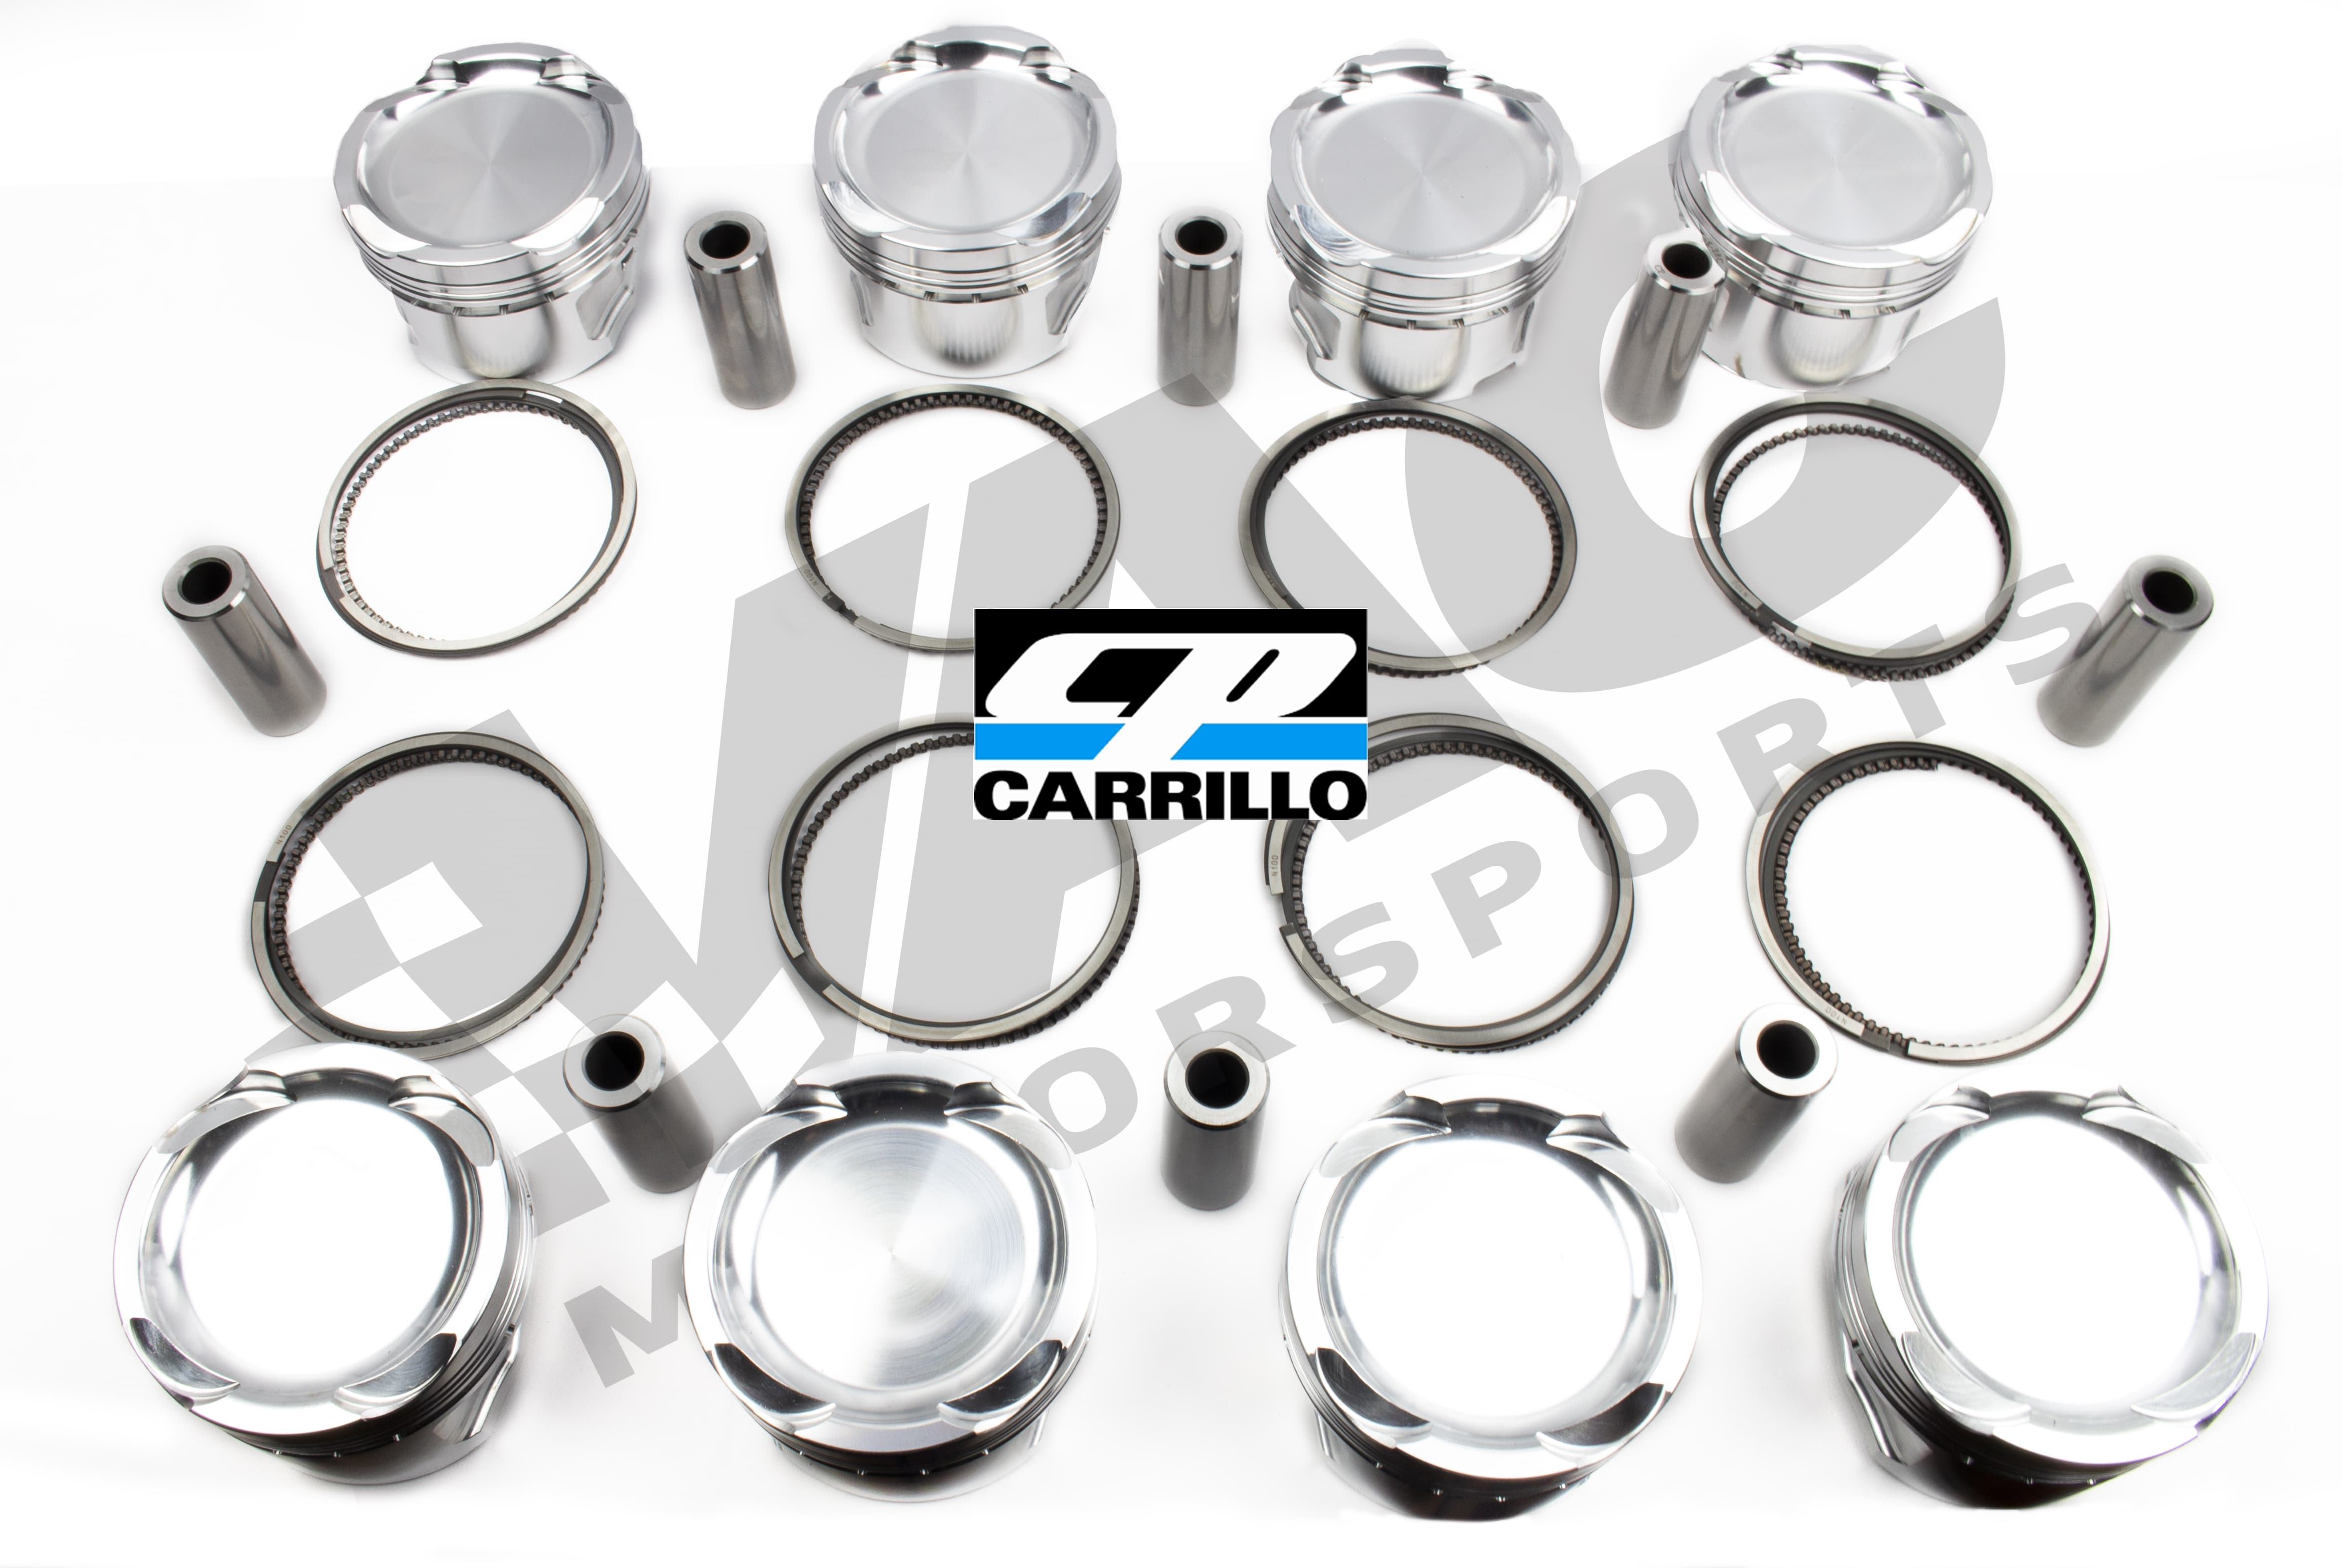 CP-Carrillo Forged Piston Set (Sleeved BMW S65 Stroker) MAIN